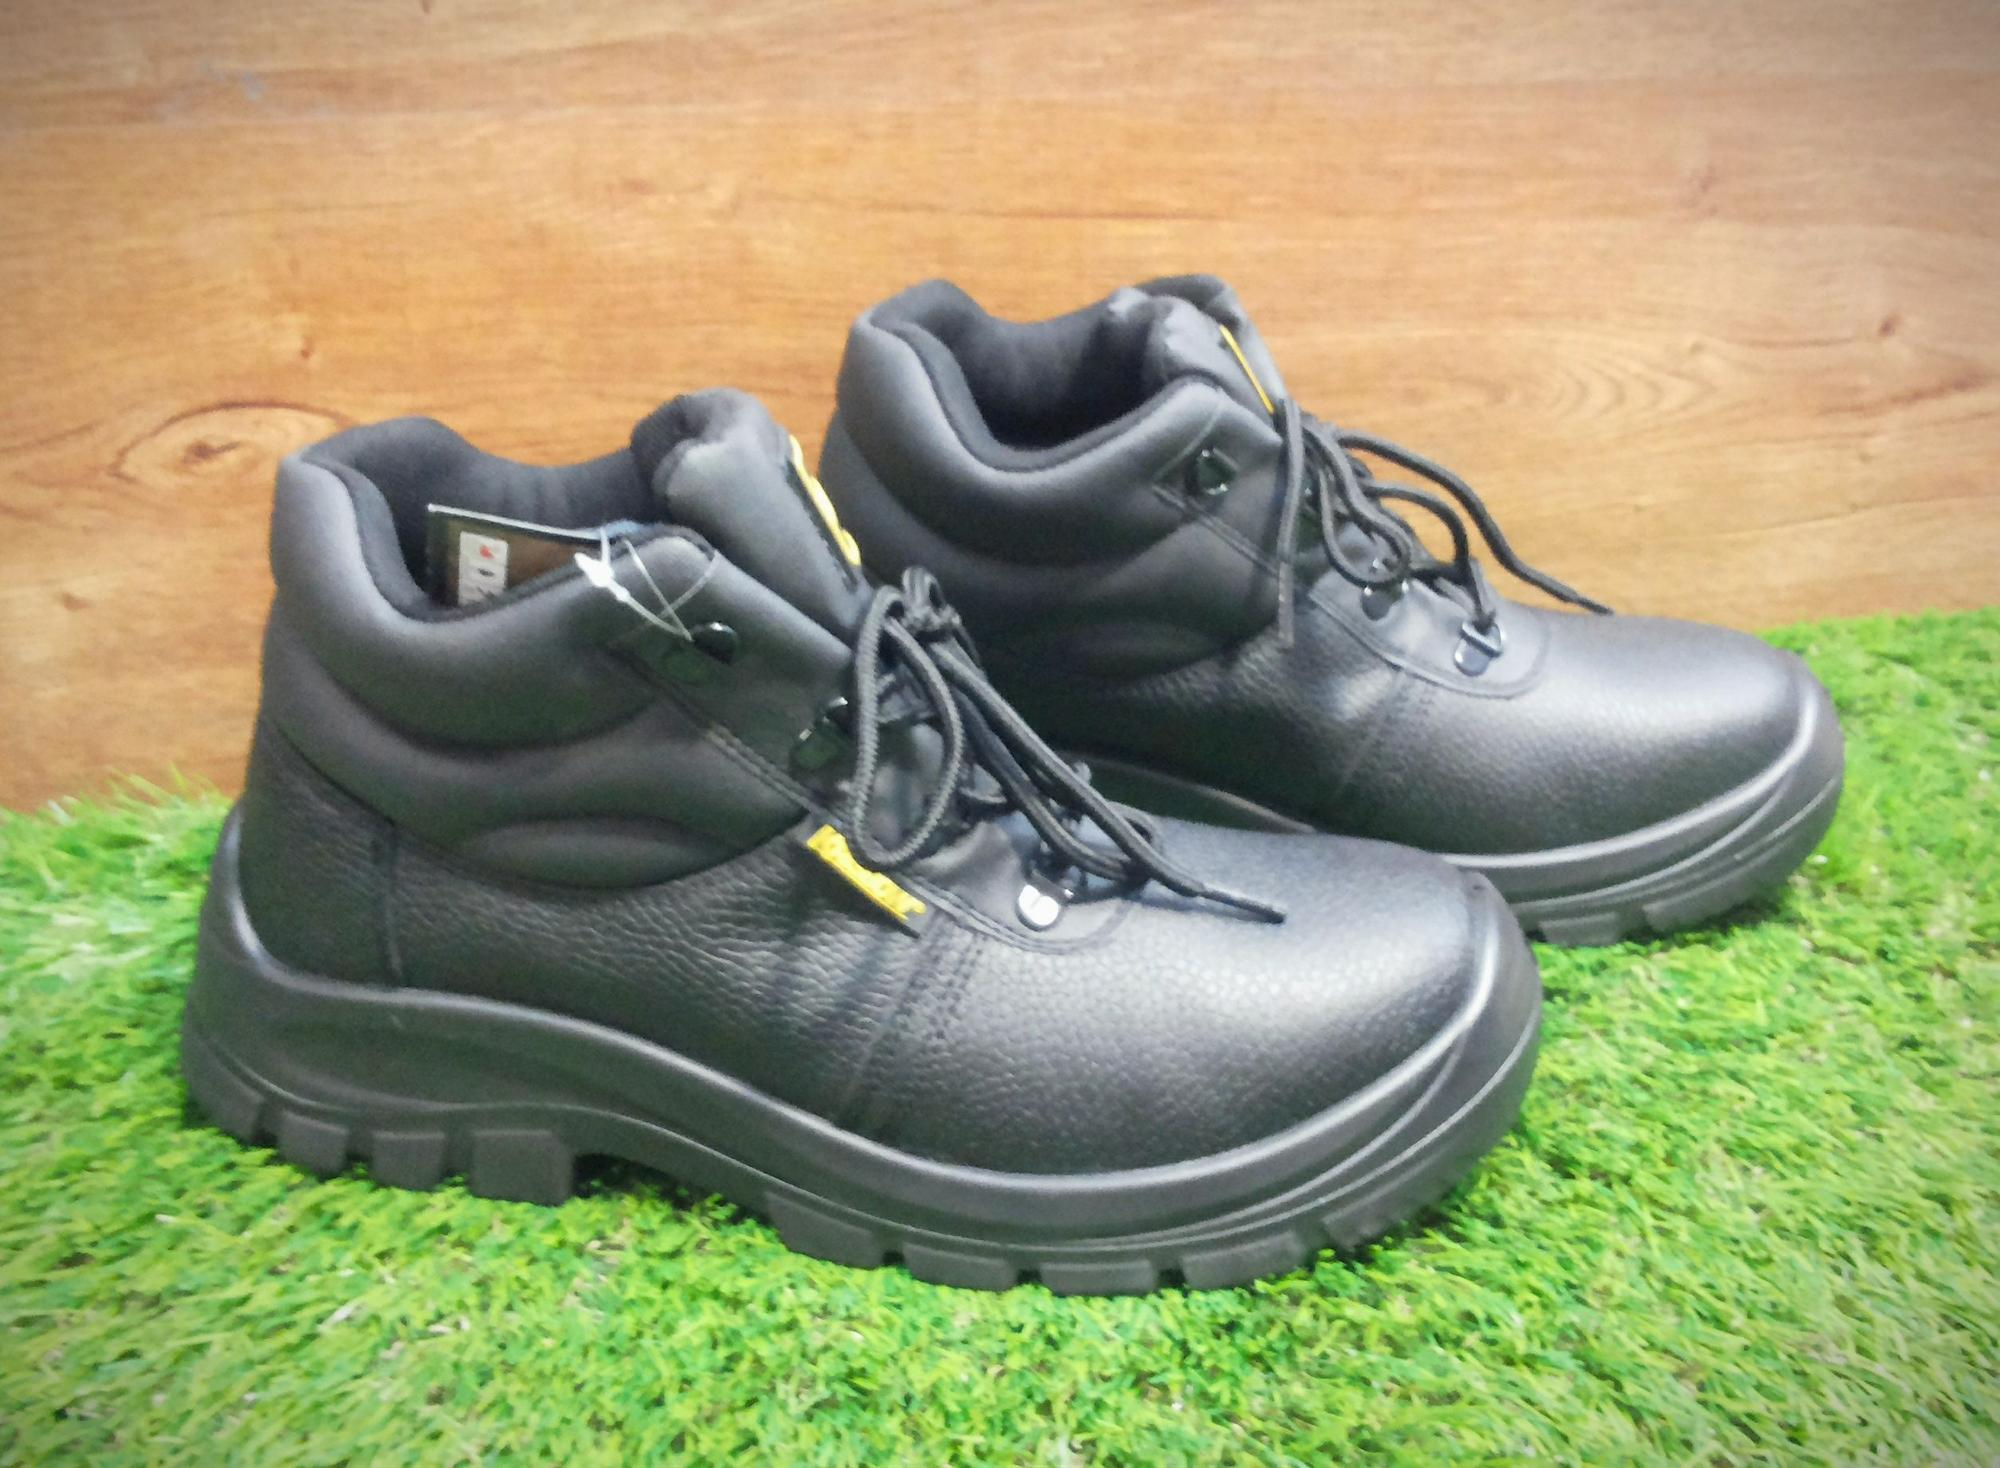 Safety shoes krisbow tipe Maxi 6 inch sepatu pengaman krisbow tipe MAXI 6  inch f5e4fa8da4